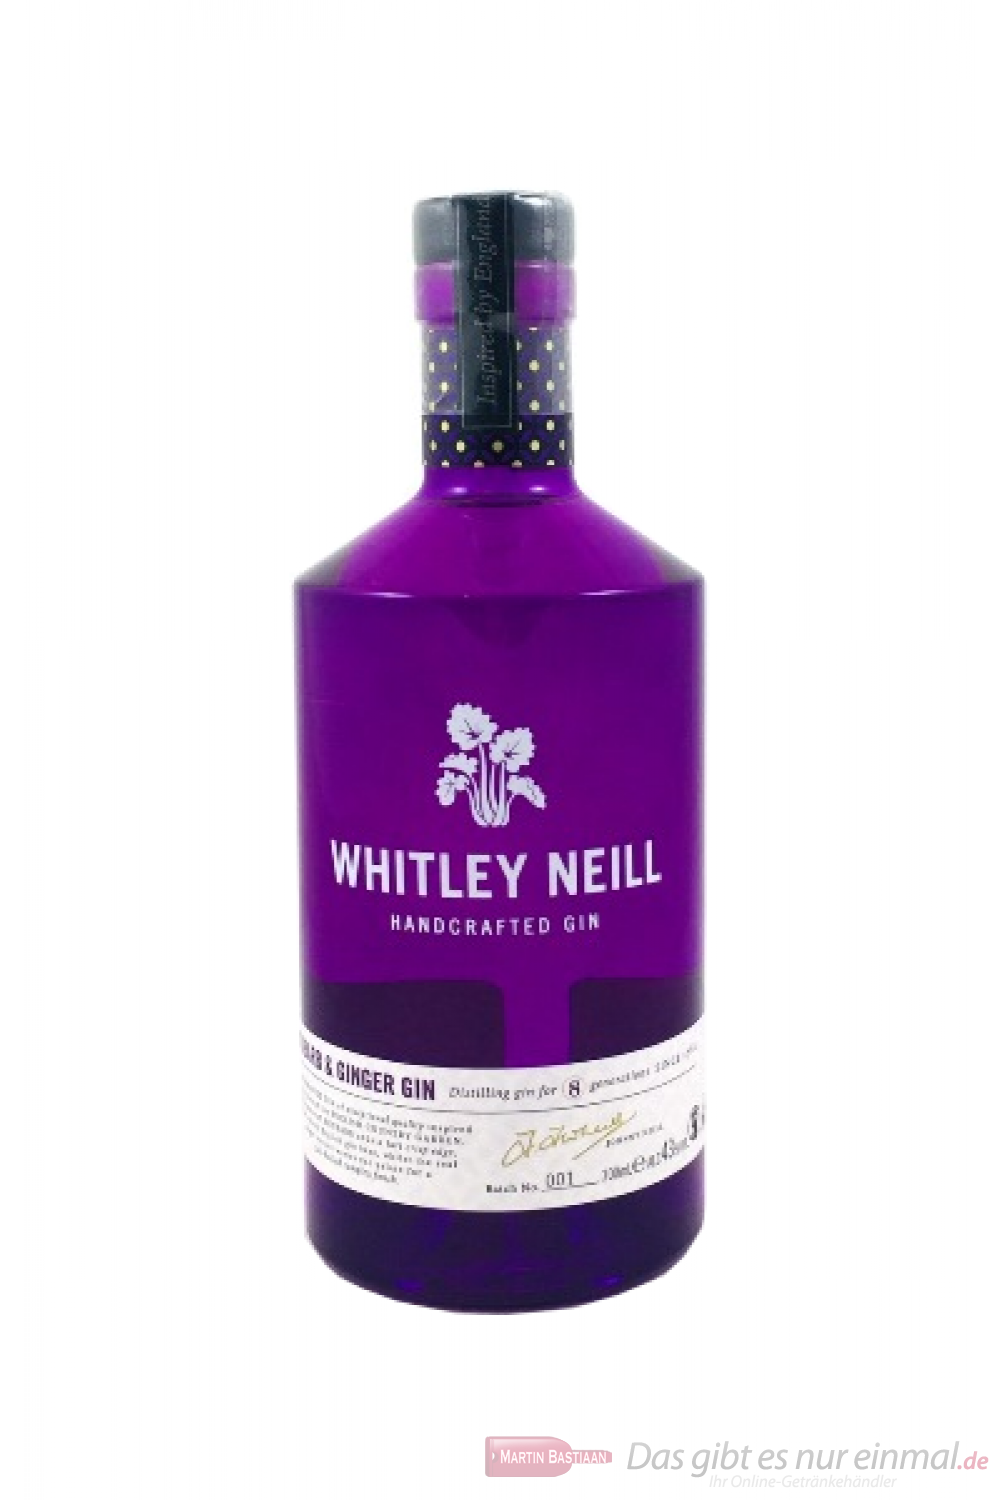 Whitley Neill Small Rhubarb & Ginger